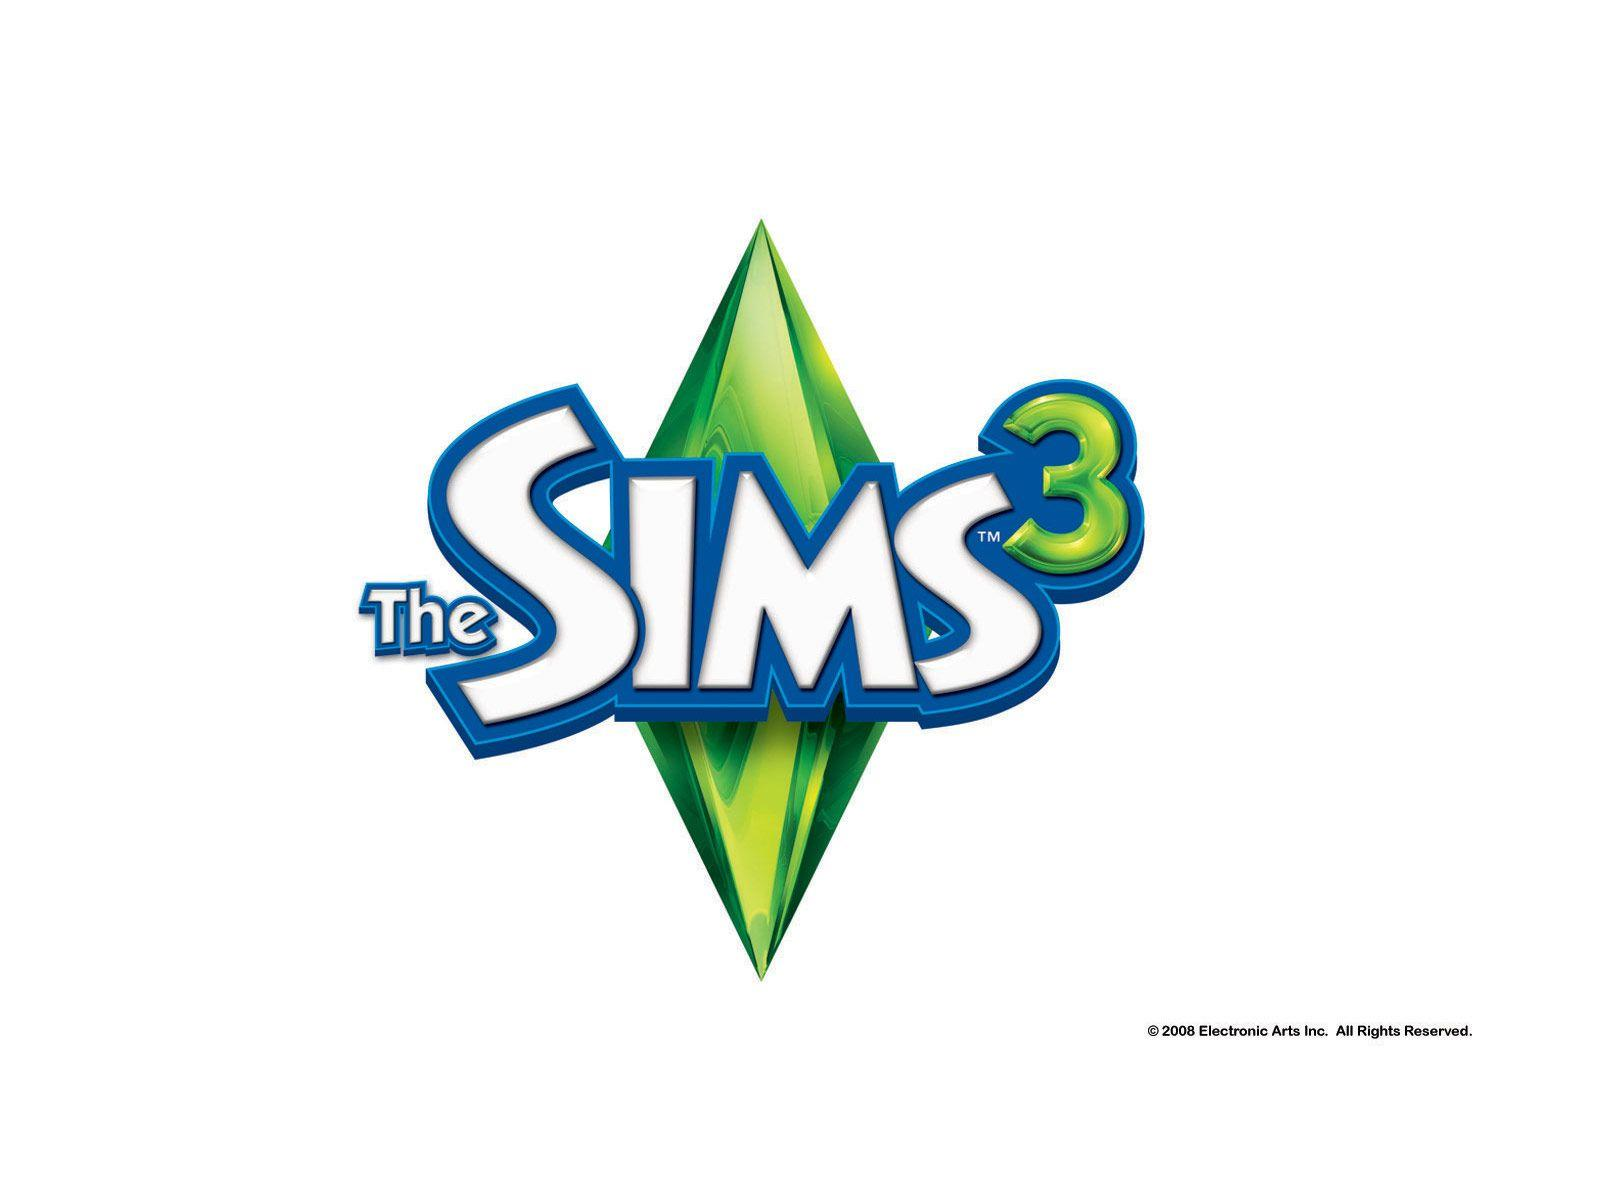 The Sims 3 Game Wallpapers - Beautiful Sims III Game Wallpapers ...